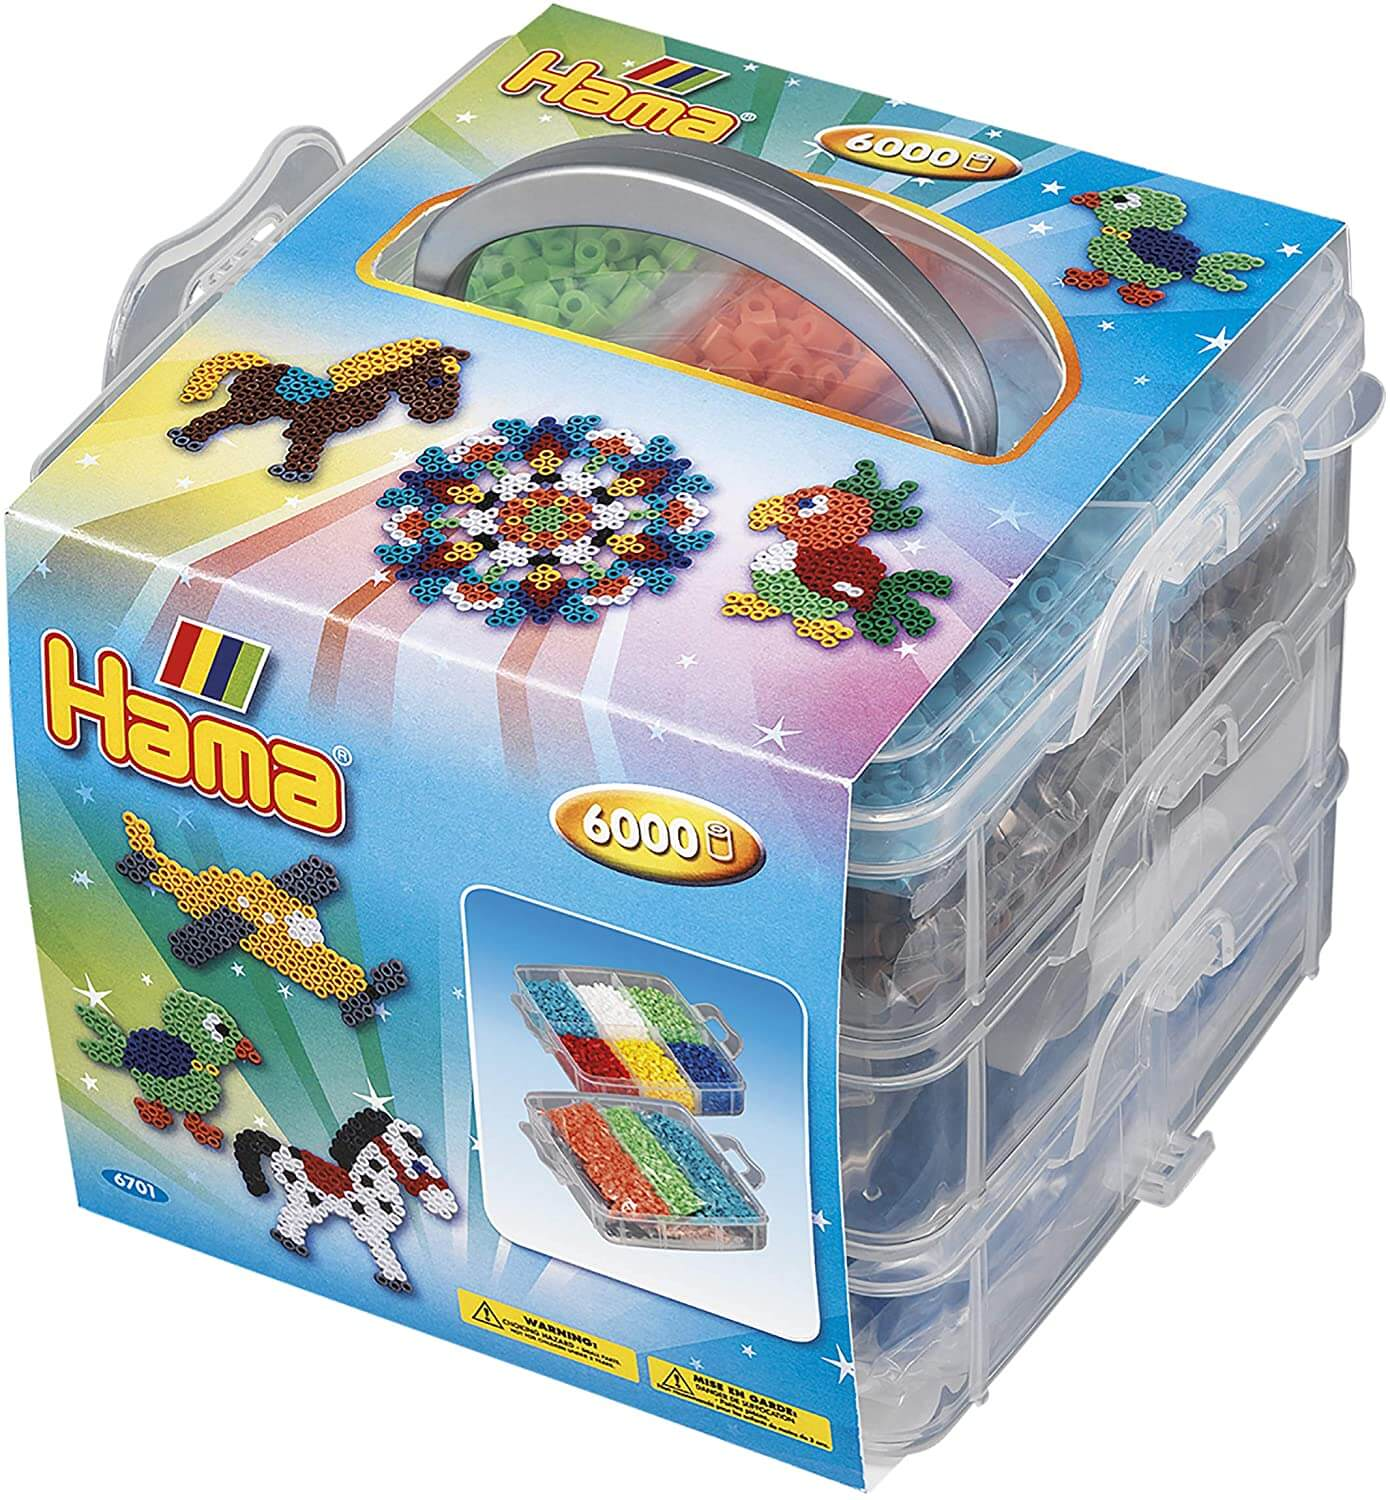 Hama Small Storage Box 6000 Beads